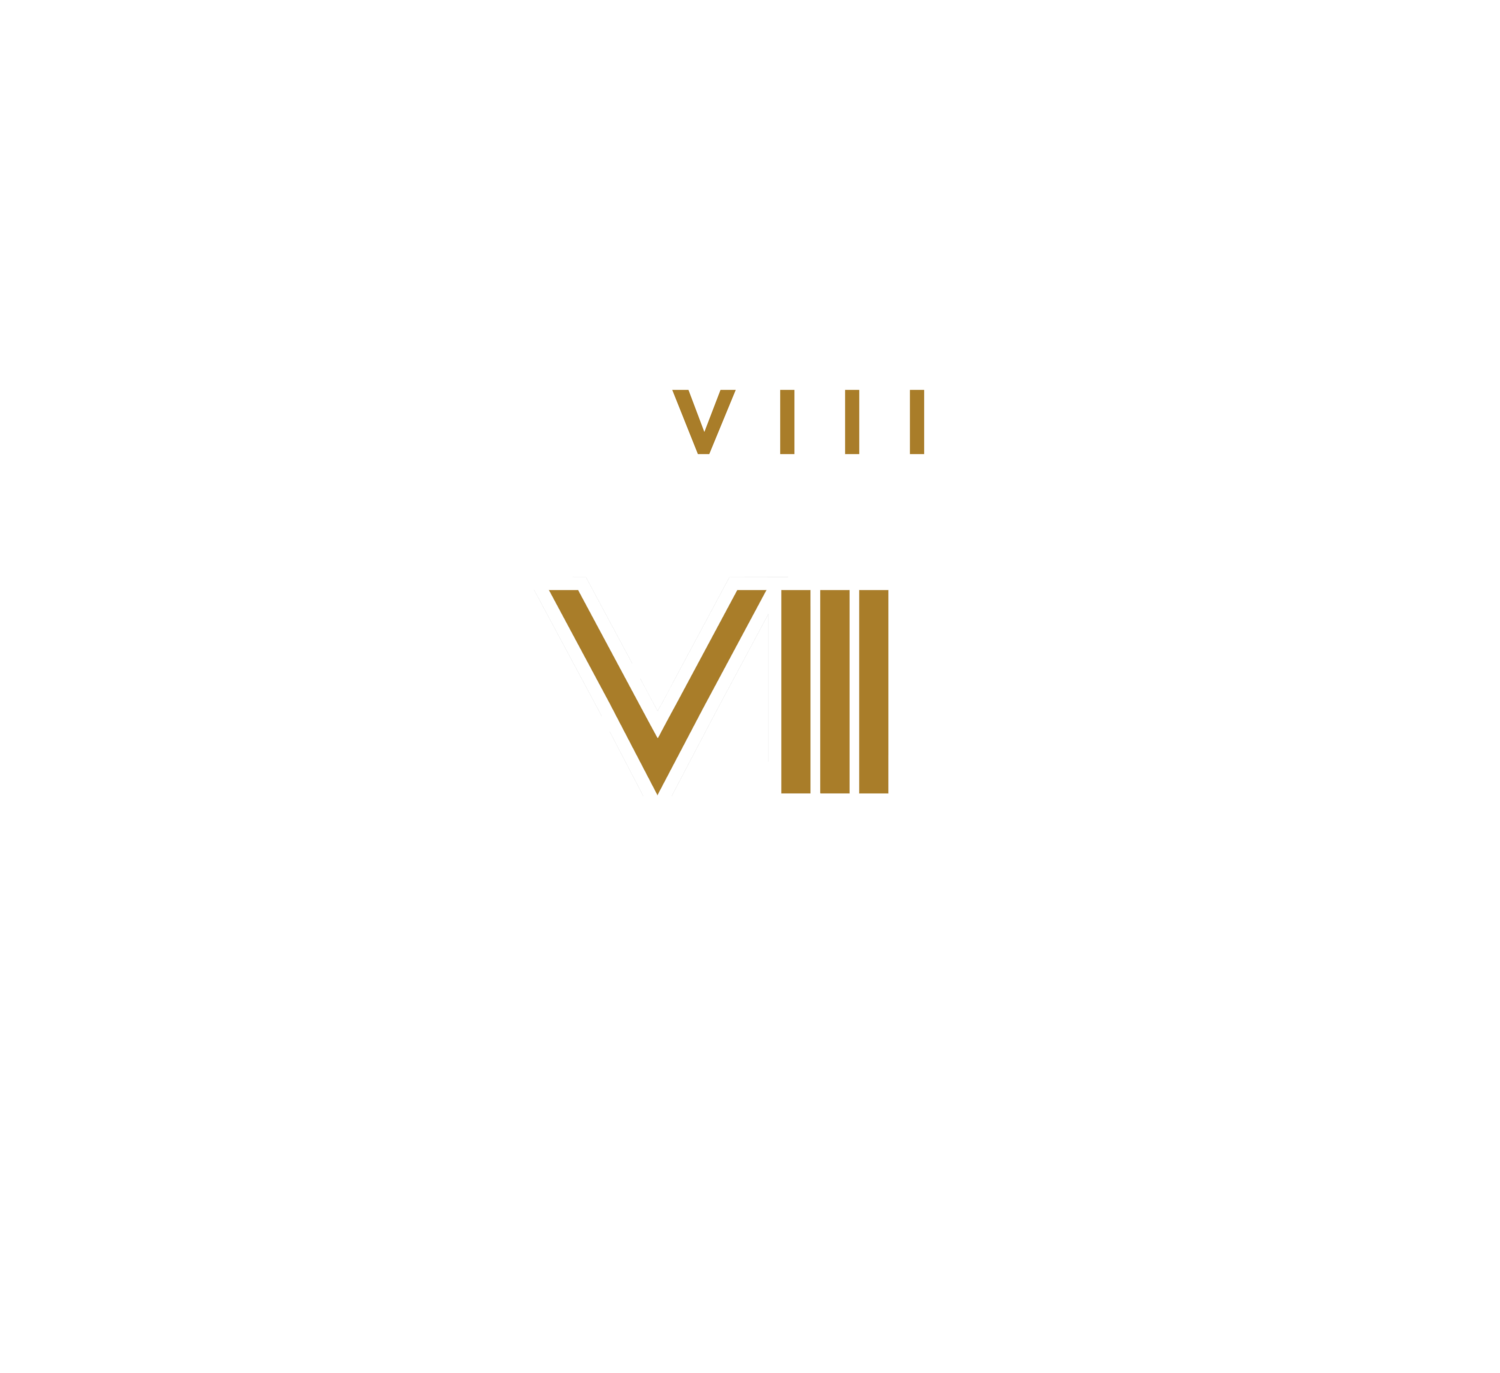 THE VIIITH